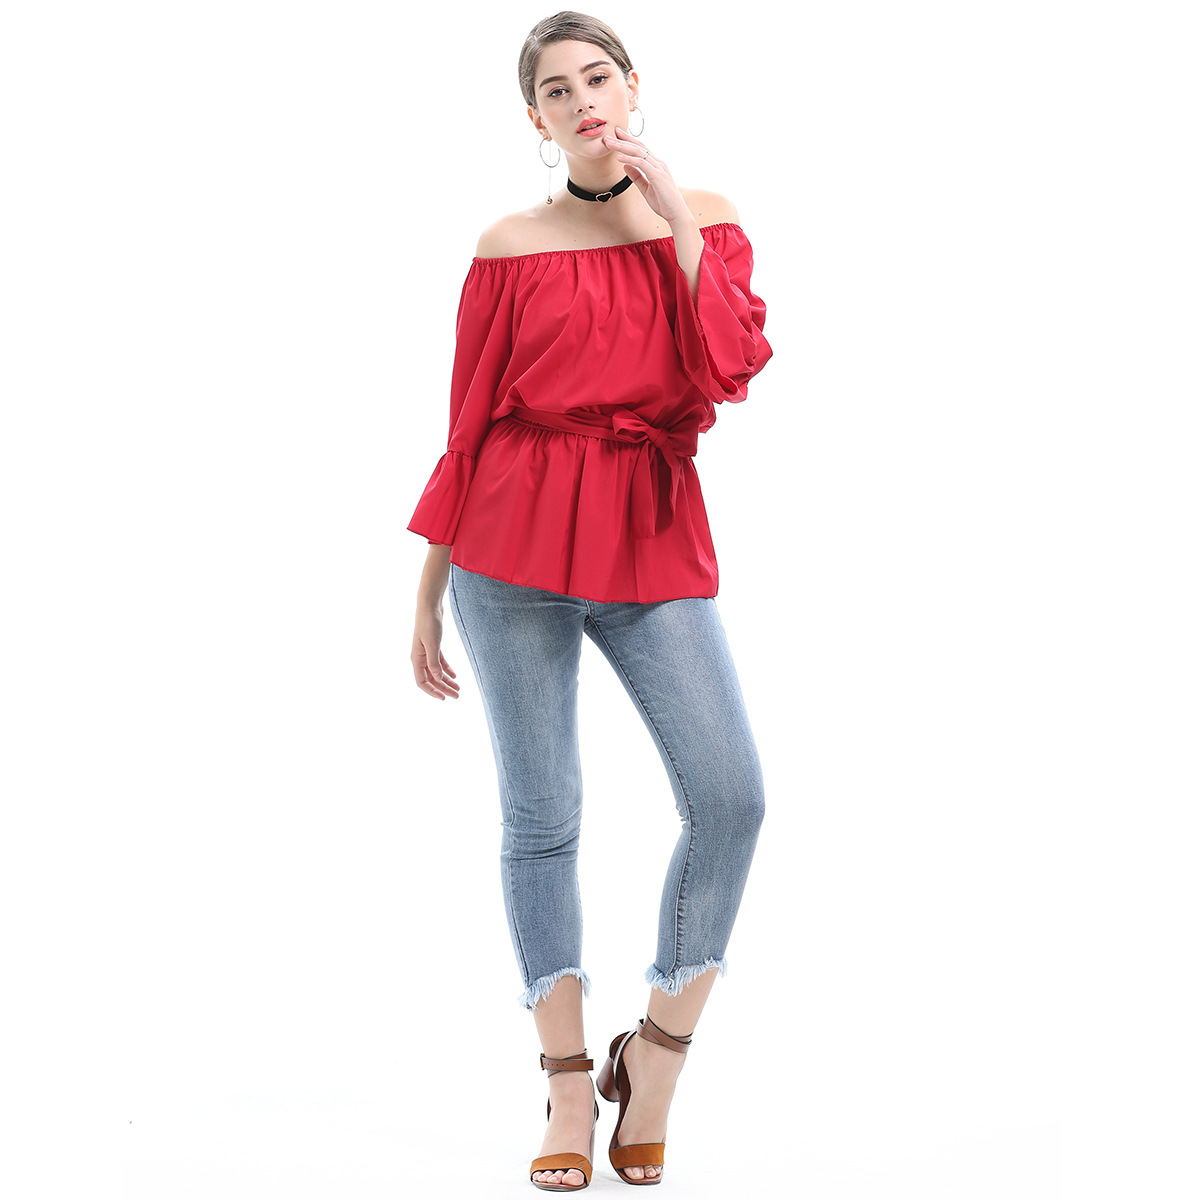 2018 new European and American style large size women's trumpet sleeves collar waist solid color women's T-shirt tops